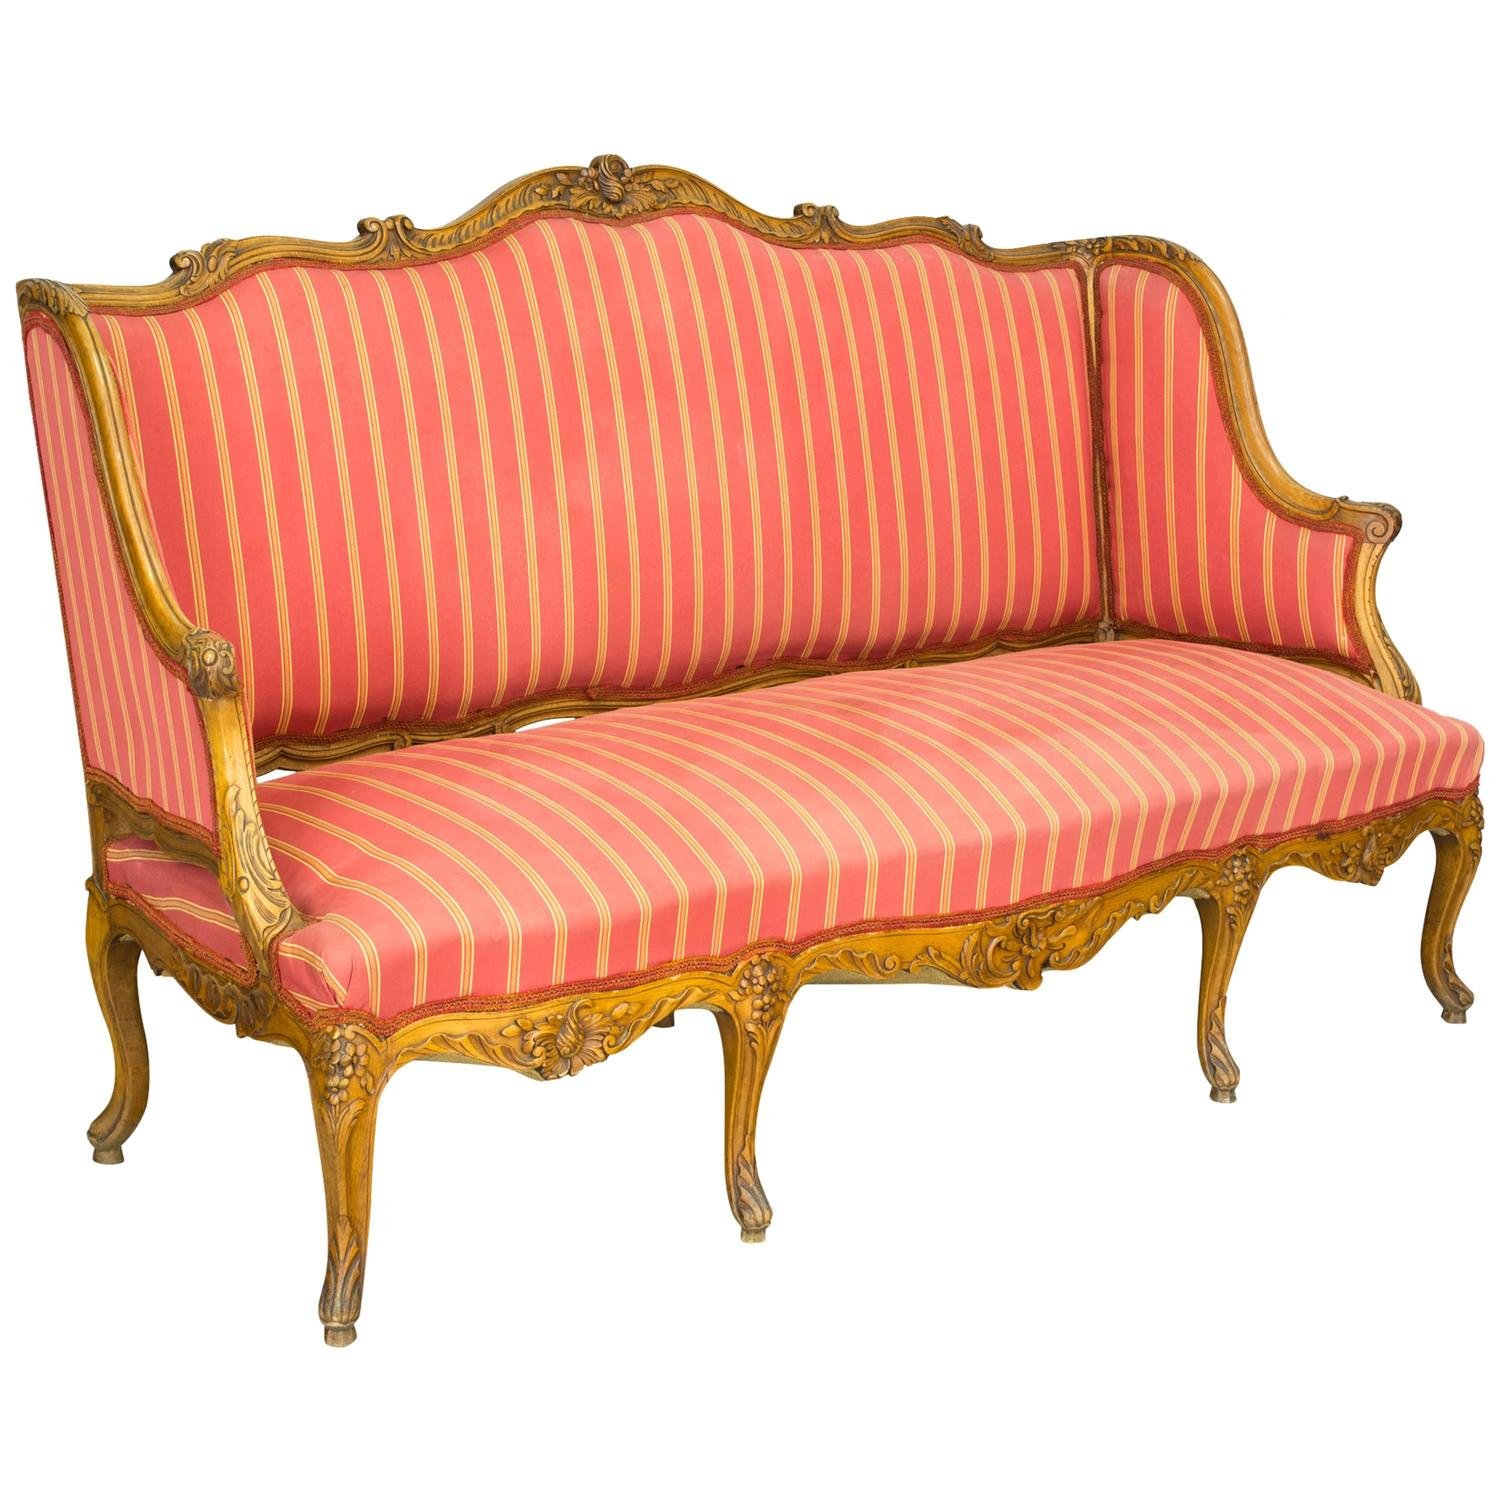 19th century louis xv style sofa or canape at 1stdibs for Canape orientale